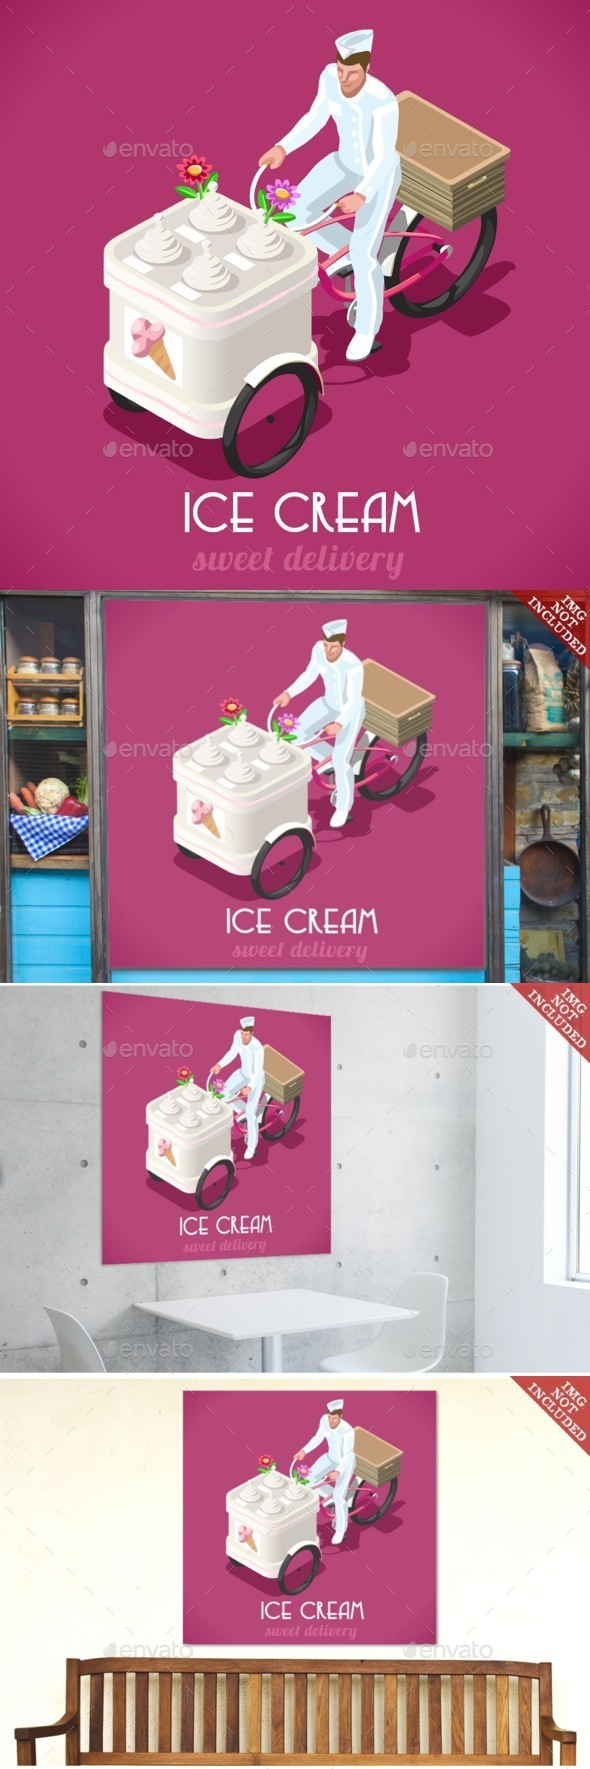 Icecream Man People Isometric - People Characters